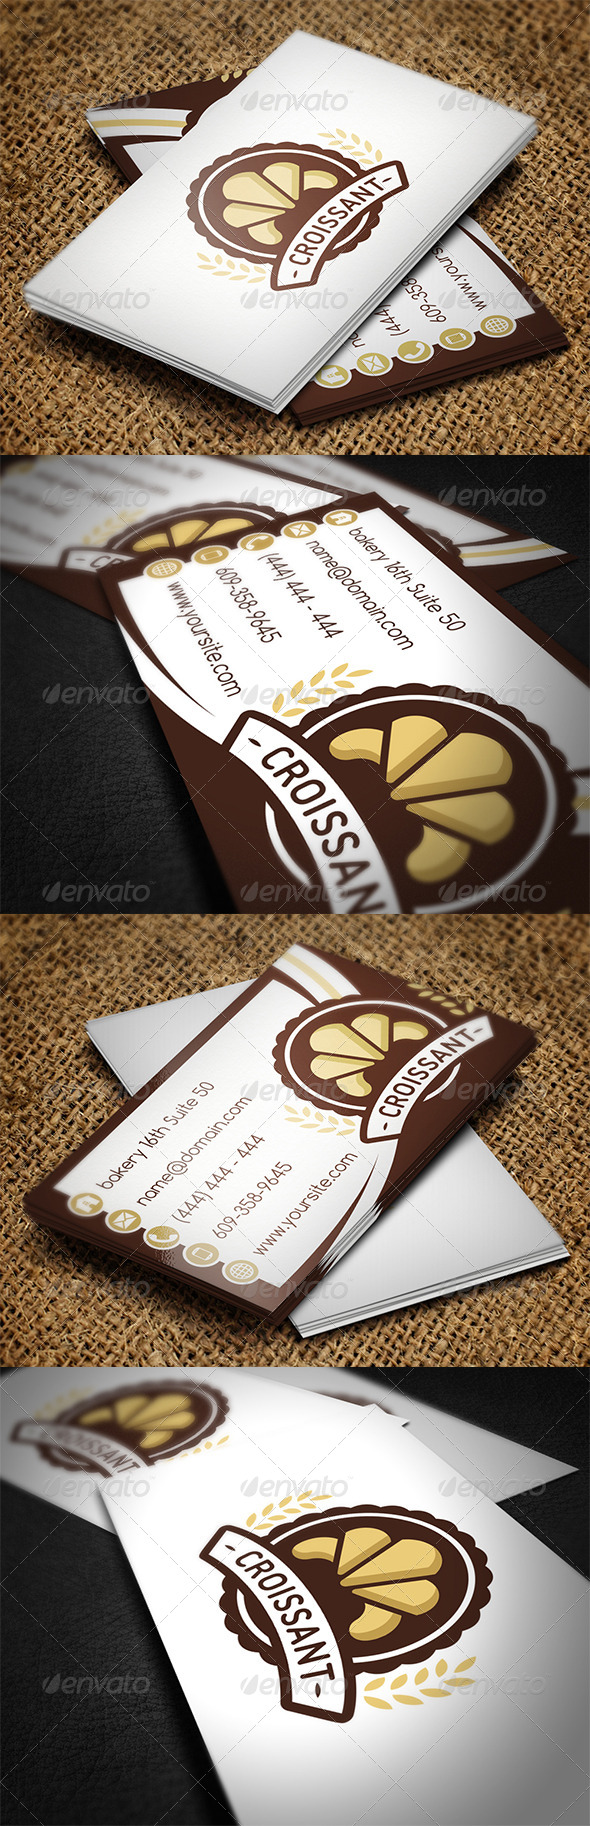 GraphicRiver Bakery Business Card 7140356